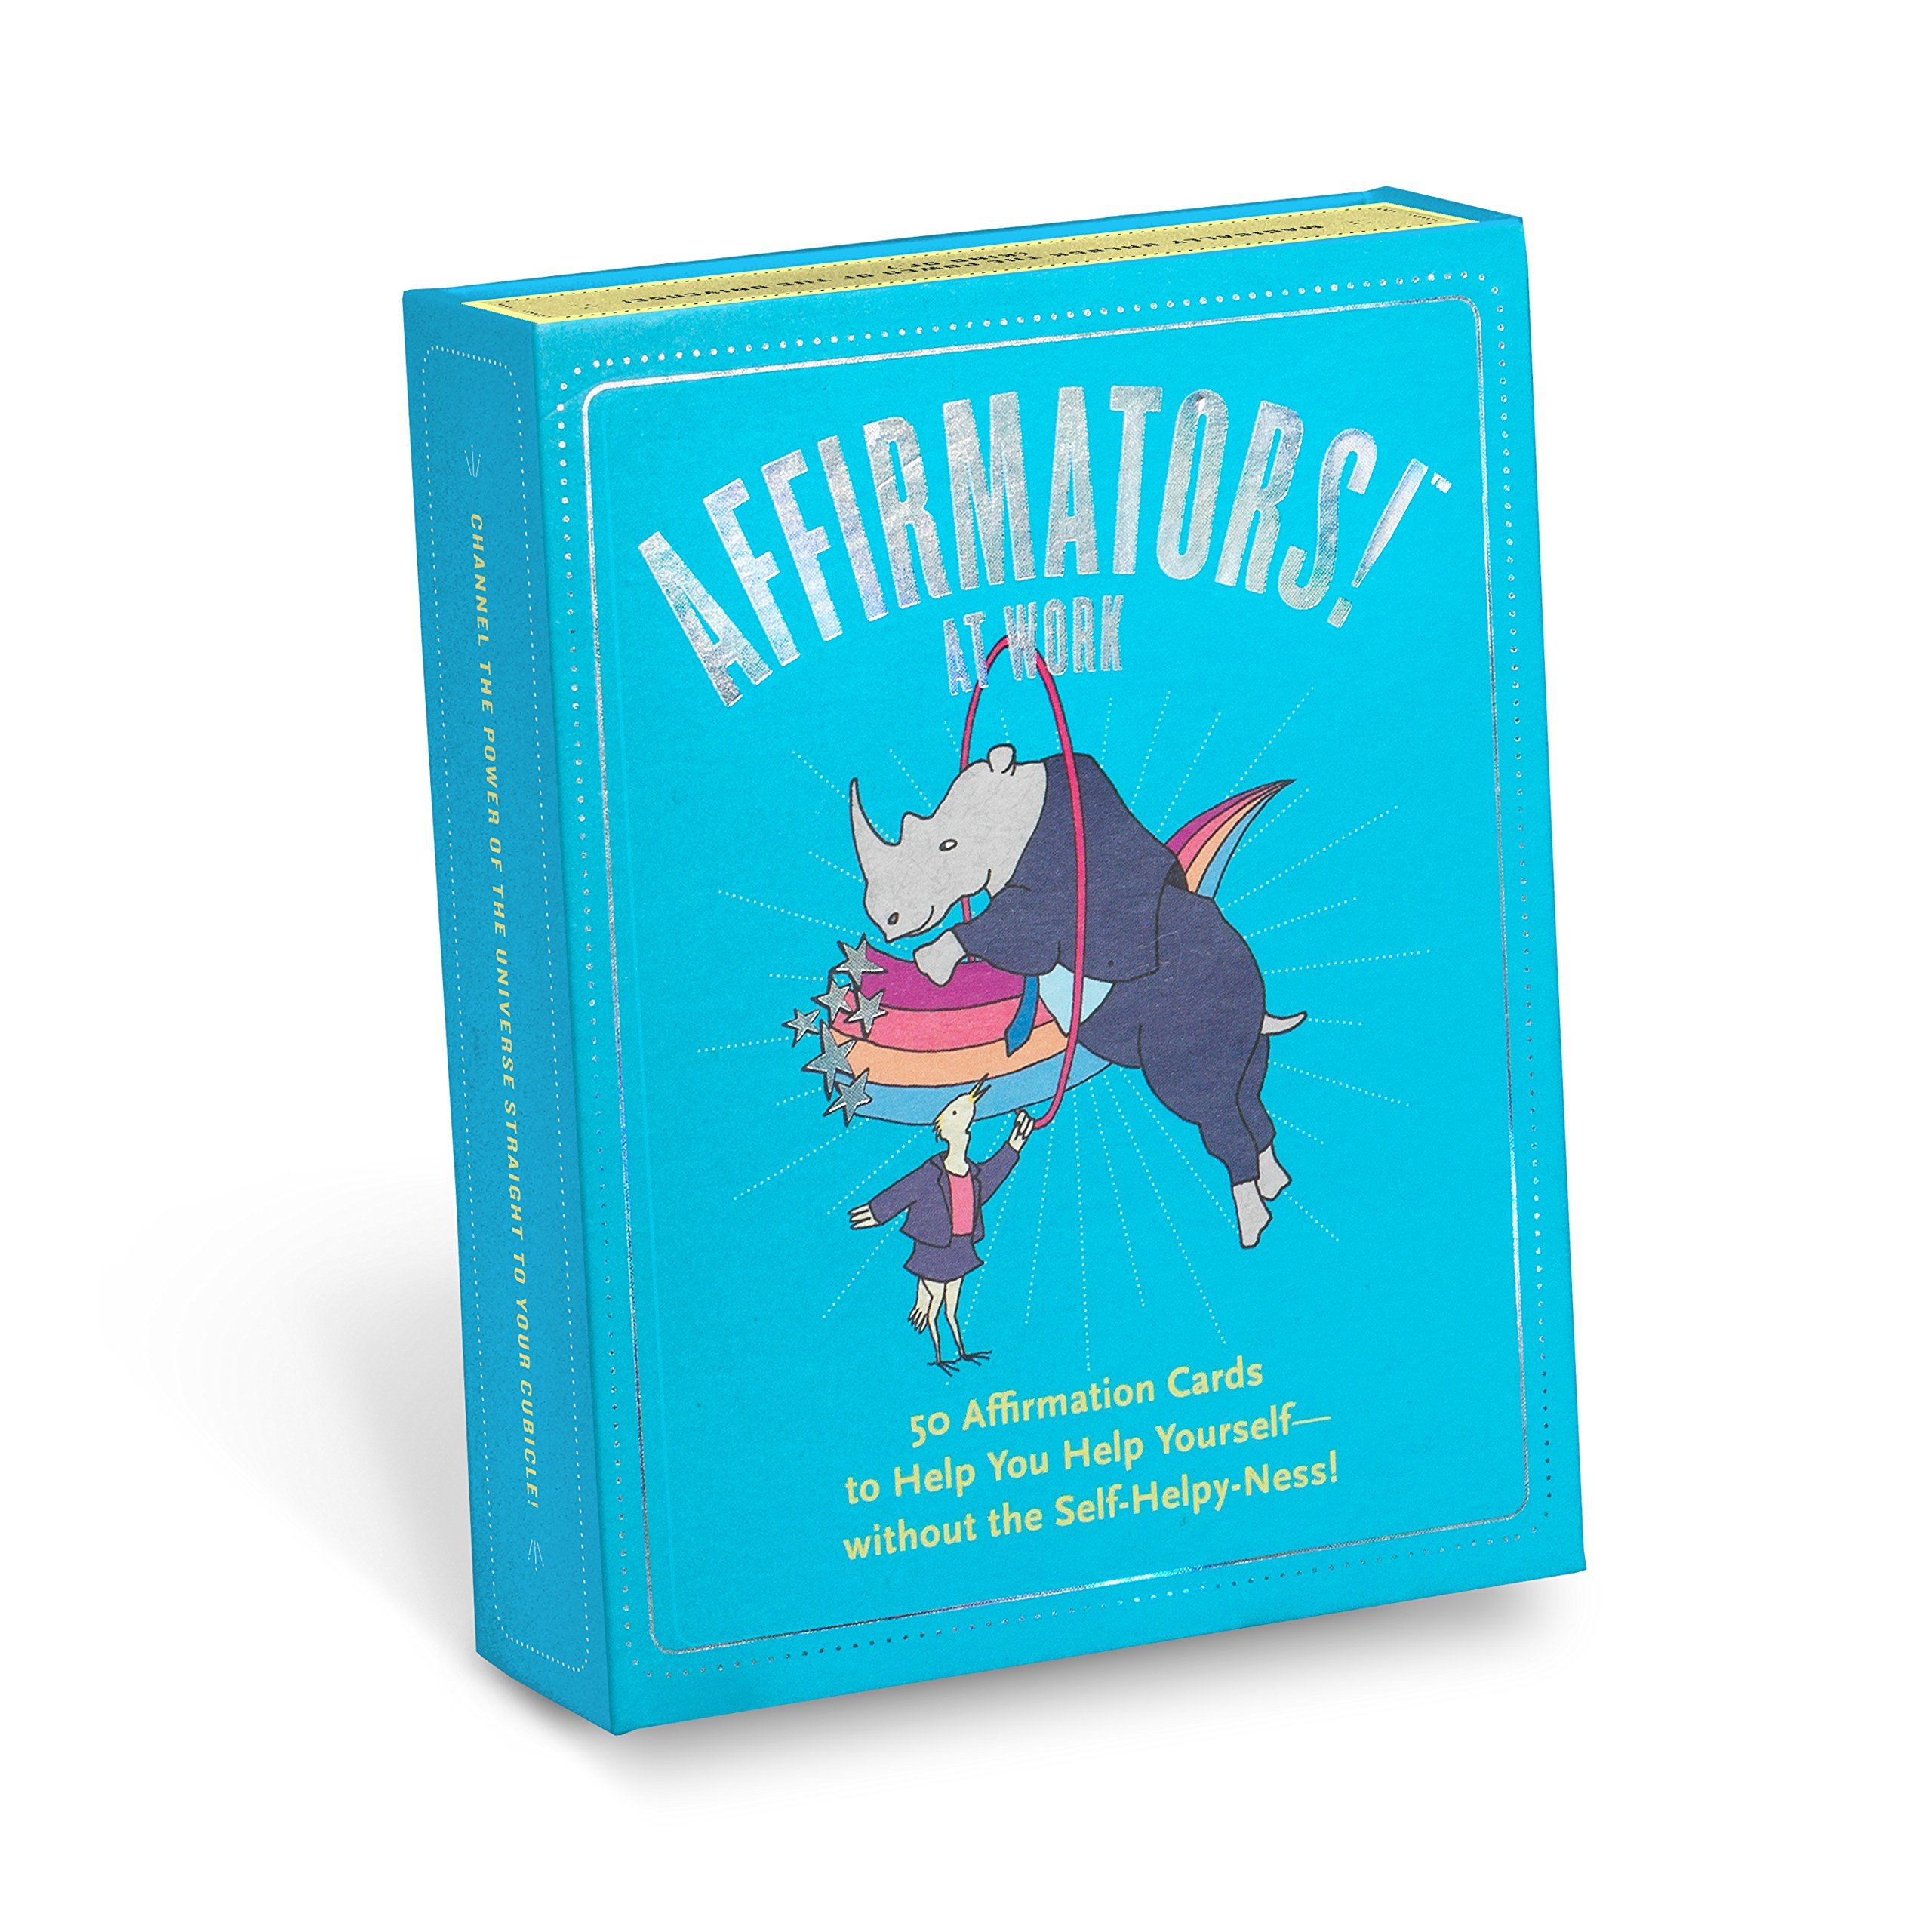 Affirmators! at Work Deck: 50 Affirmation Cards to Help You Help Yourself – Without the Self-helpy-ness!